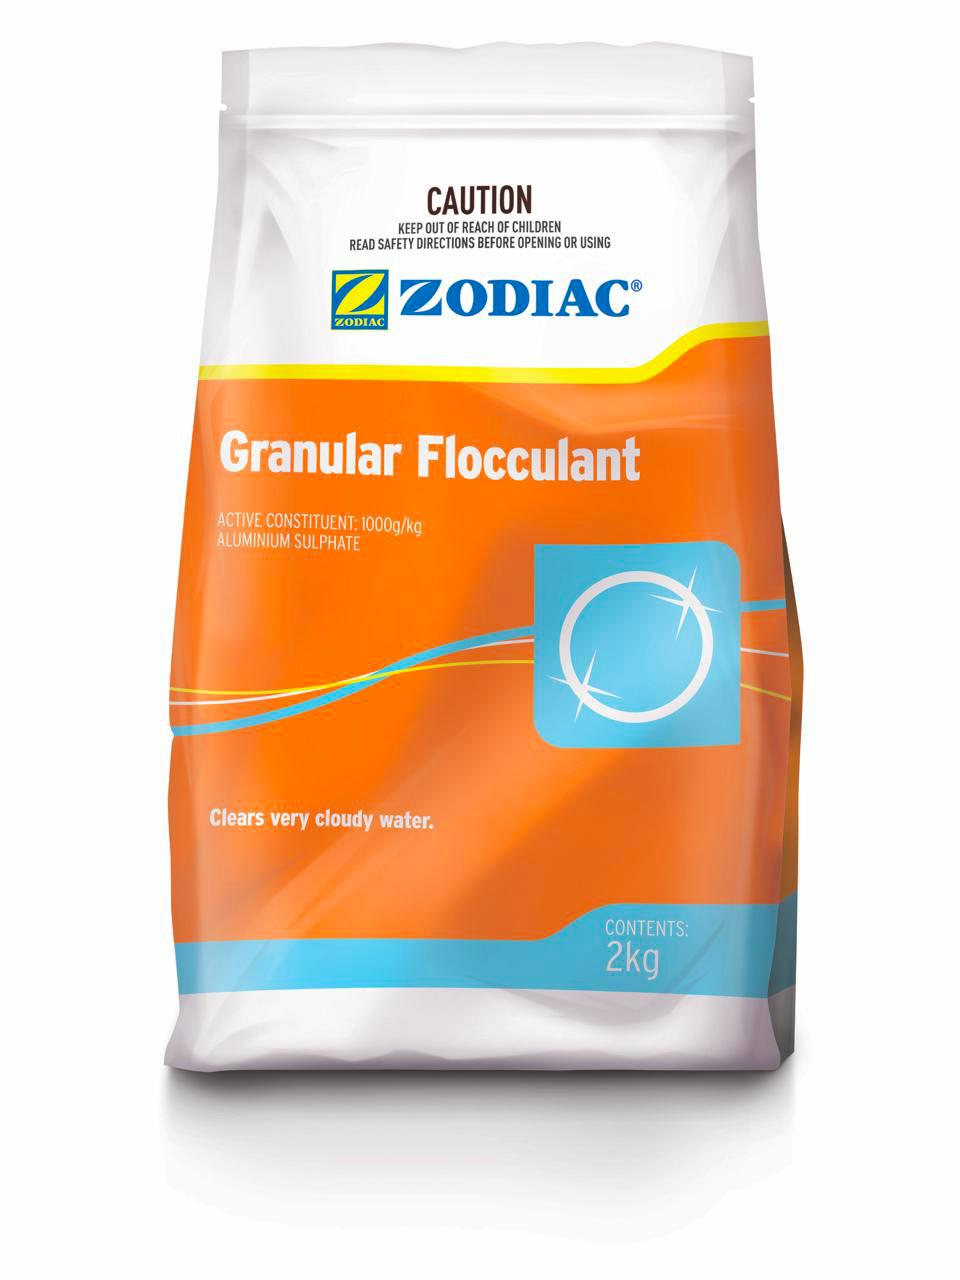 Swimming Pool Alum Powder Pool Flocculant 2 Kg. – Epools Pool Shop